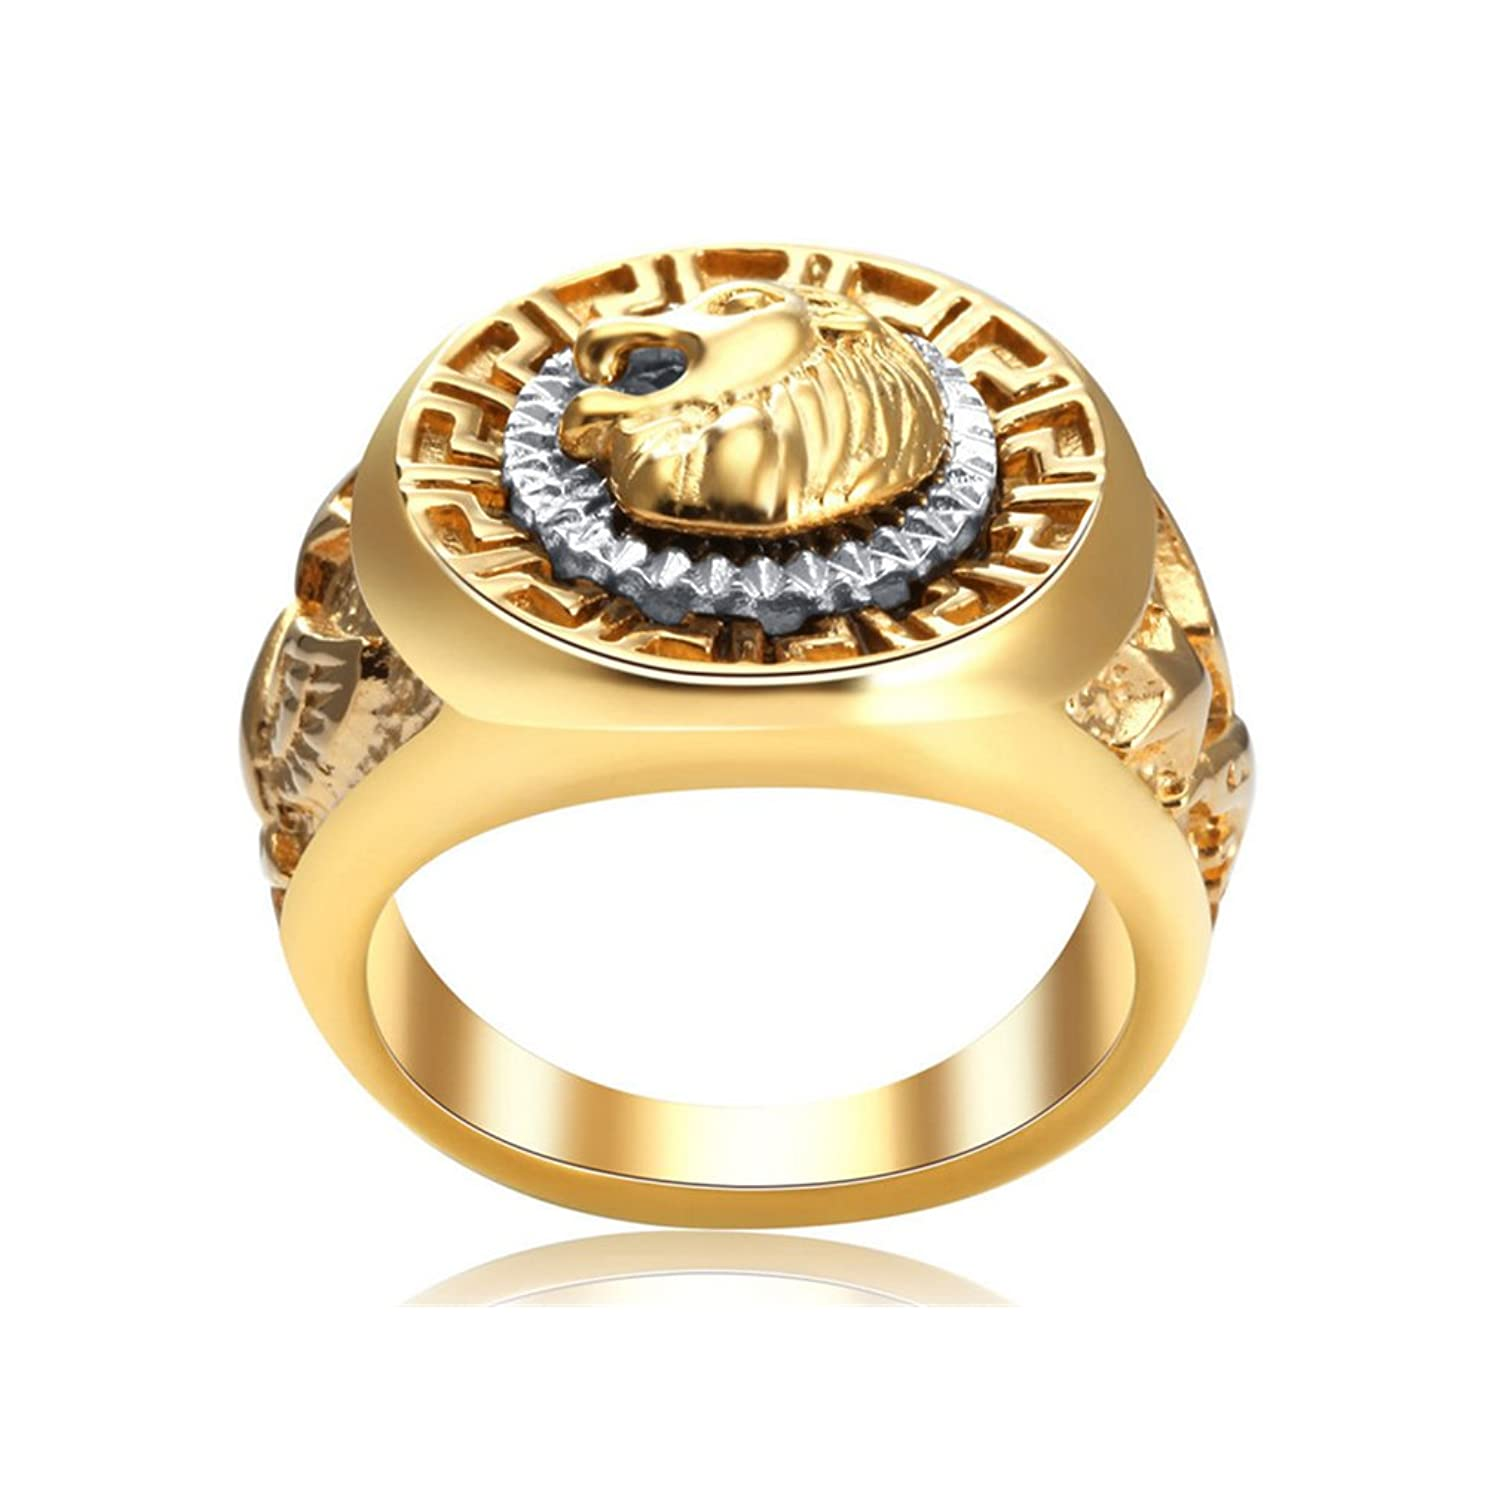 ring tusk lions men rings stainless product quality angels solid lion iron high head steel